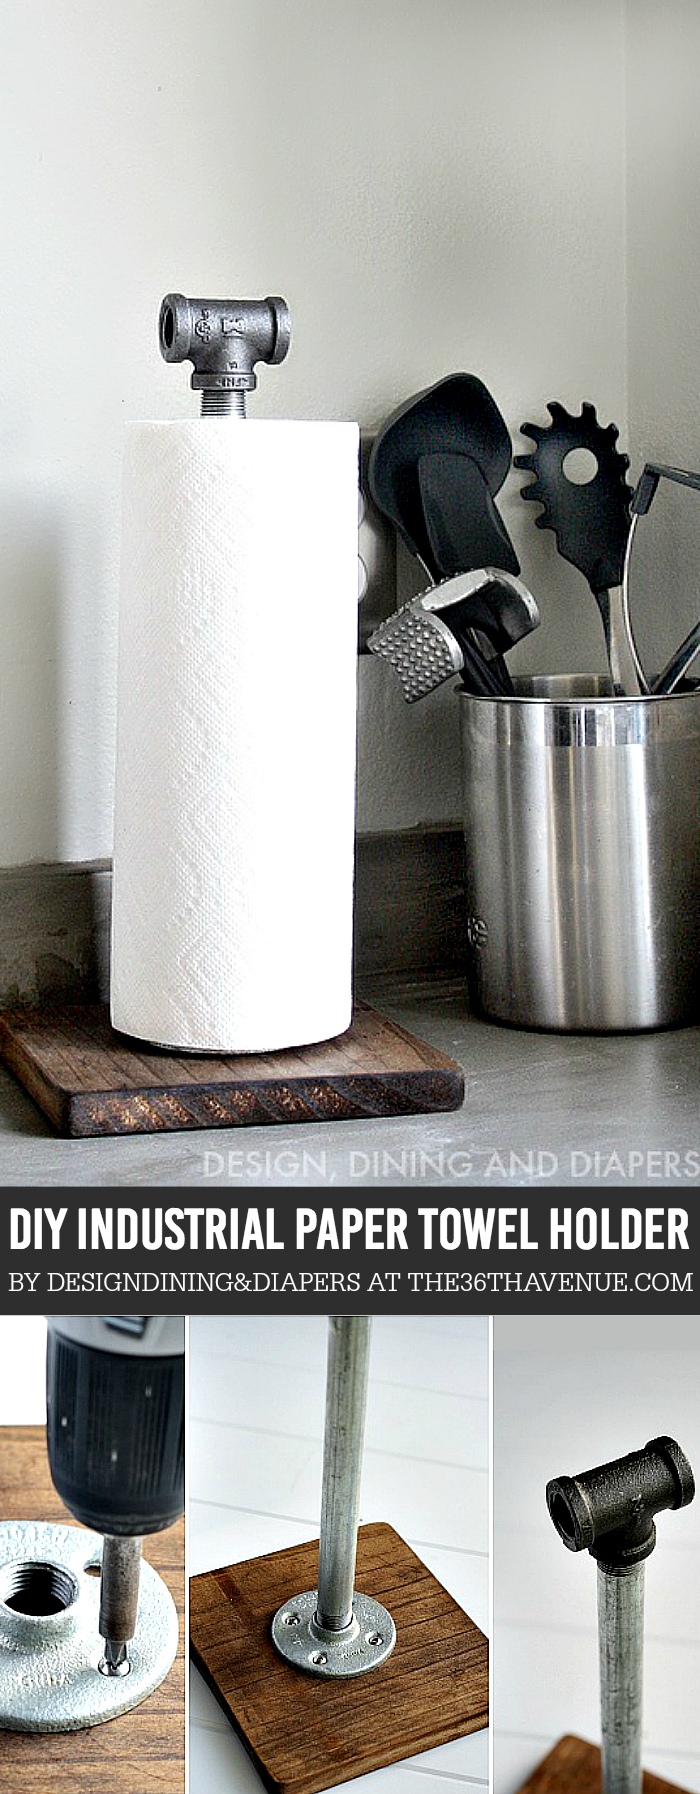 DIY Industrial Paper Towel Holder made from wood and plumbing pipes.